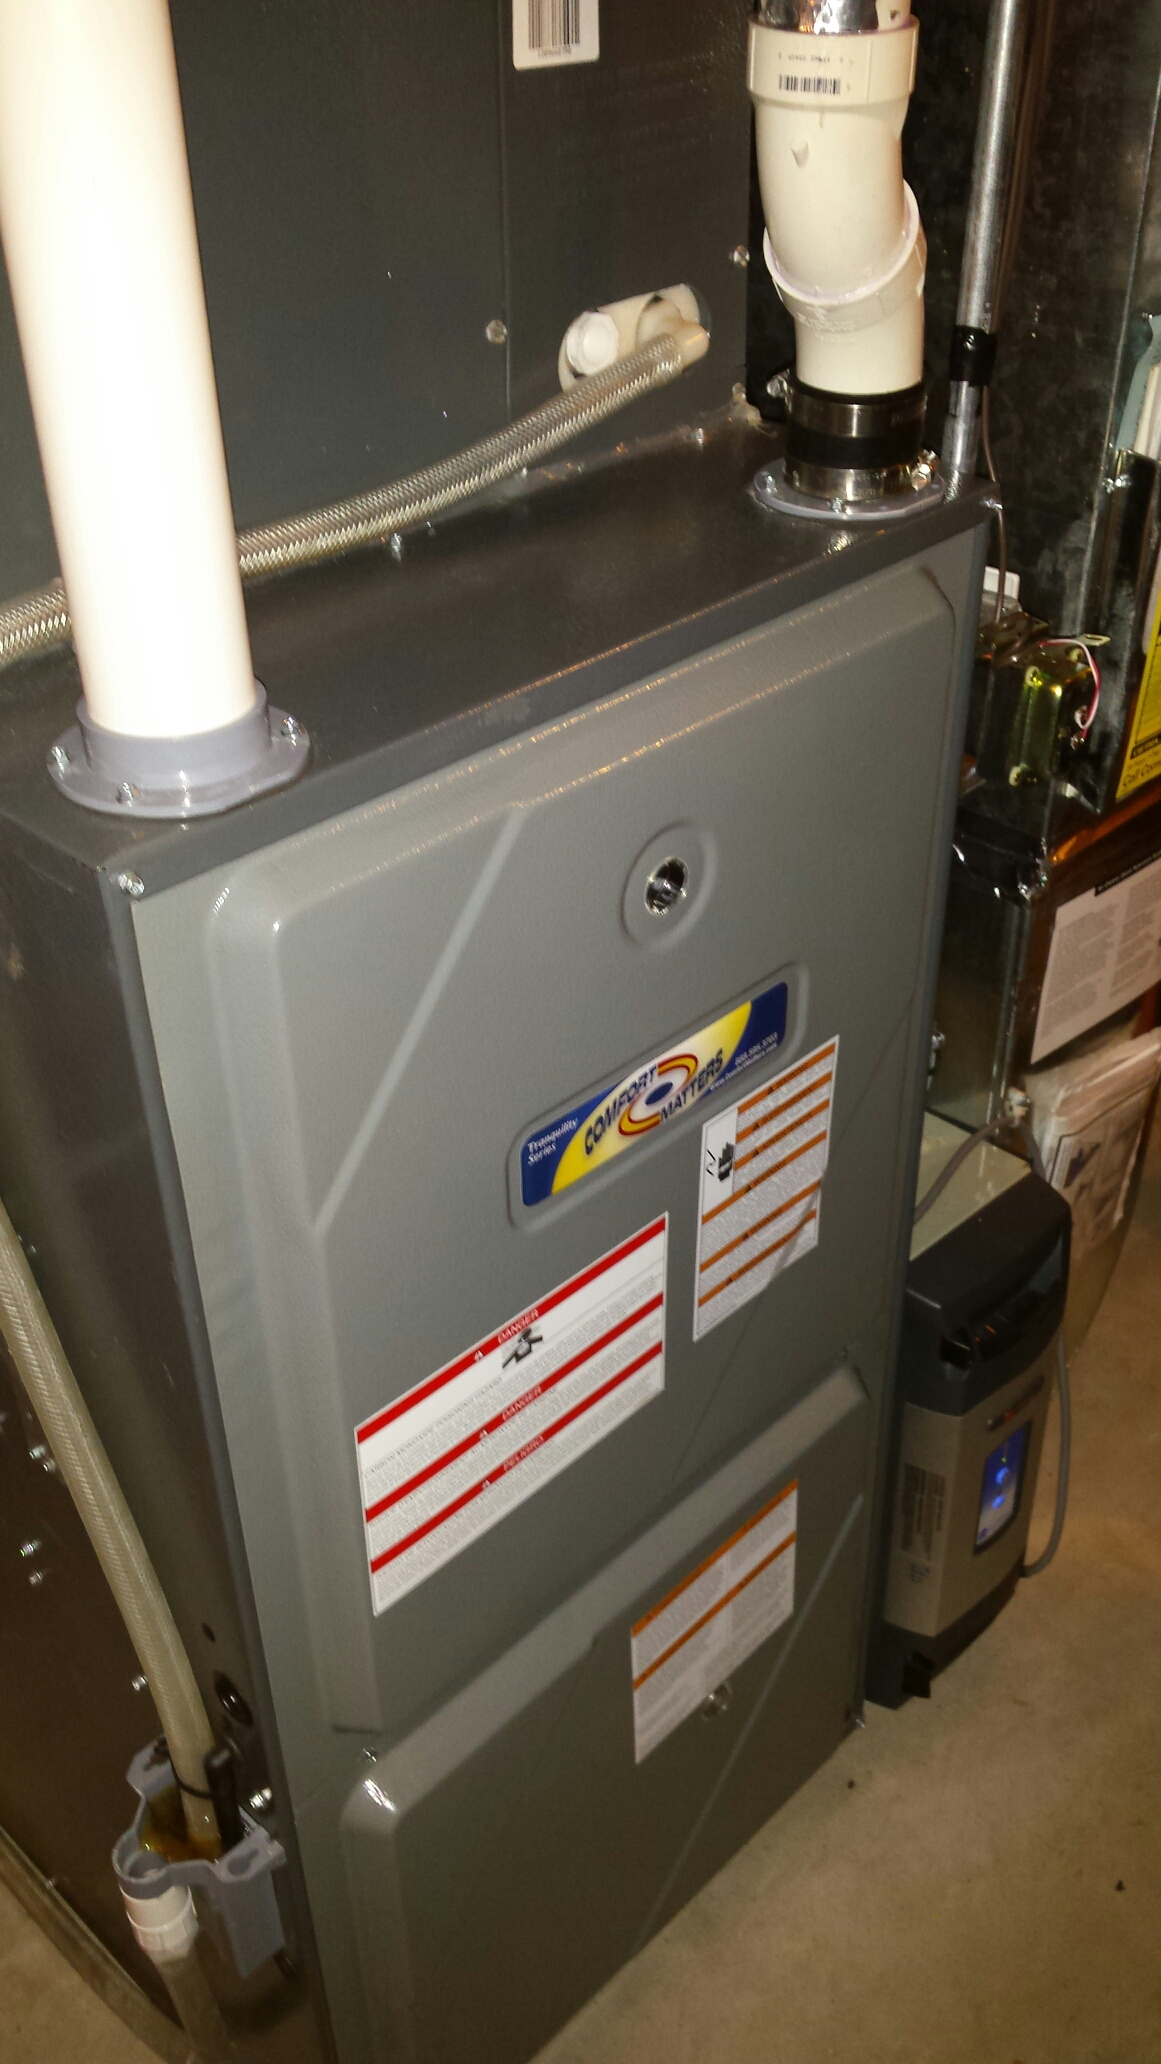 #AF211C Furnace & Air Conditioning Repair In Mound MN Highly Rated 8849 Air Conditioning Installation Fairfield Ct wallpapers with 1161x2064 px on helpvideos.info - Air Conditioners, Air Coolers and more